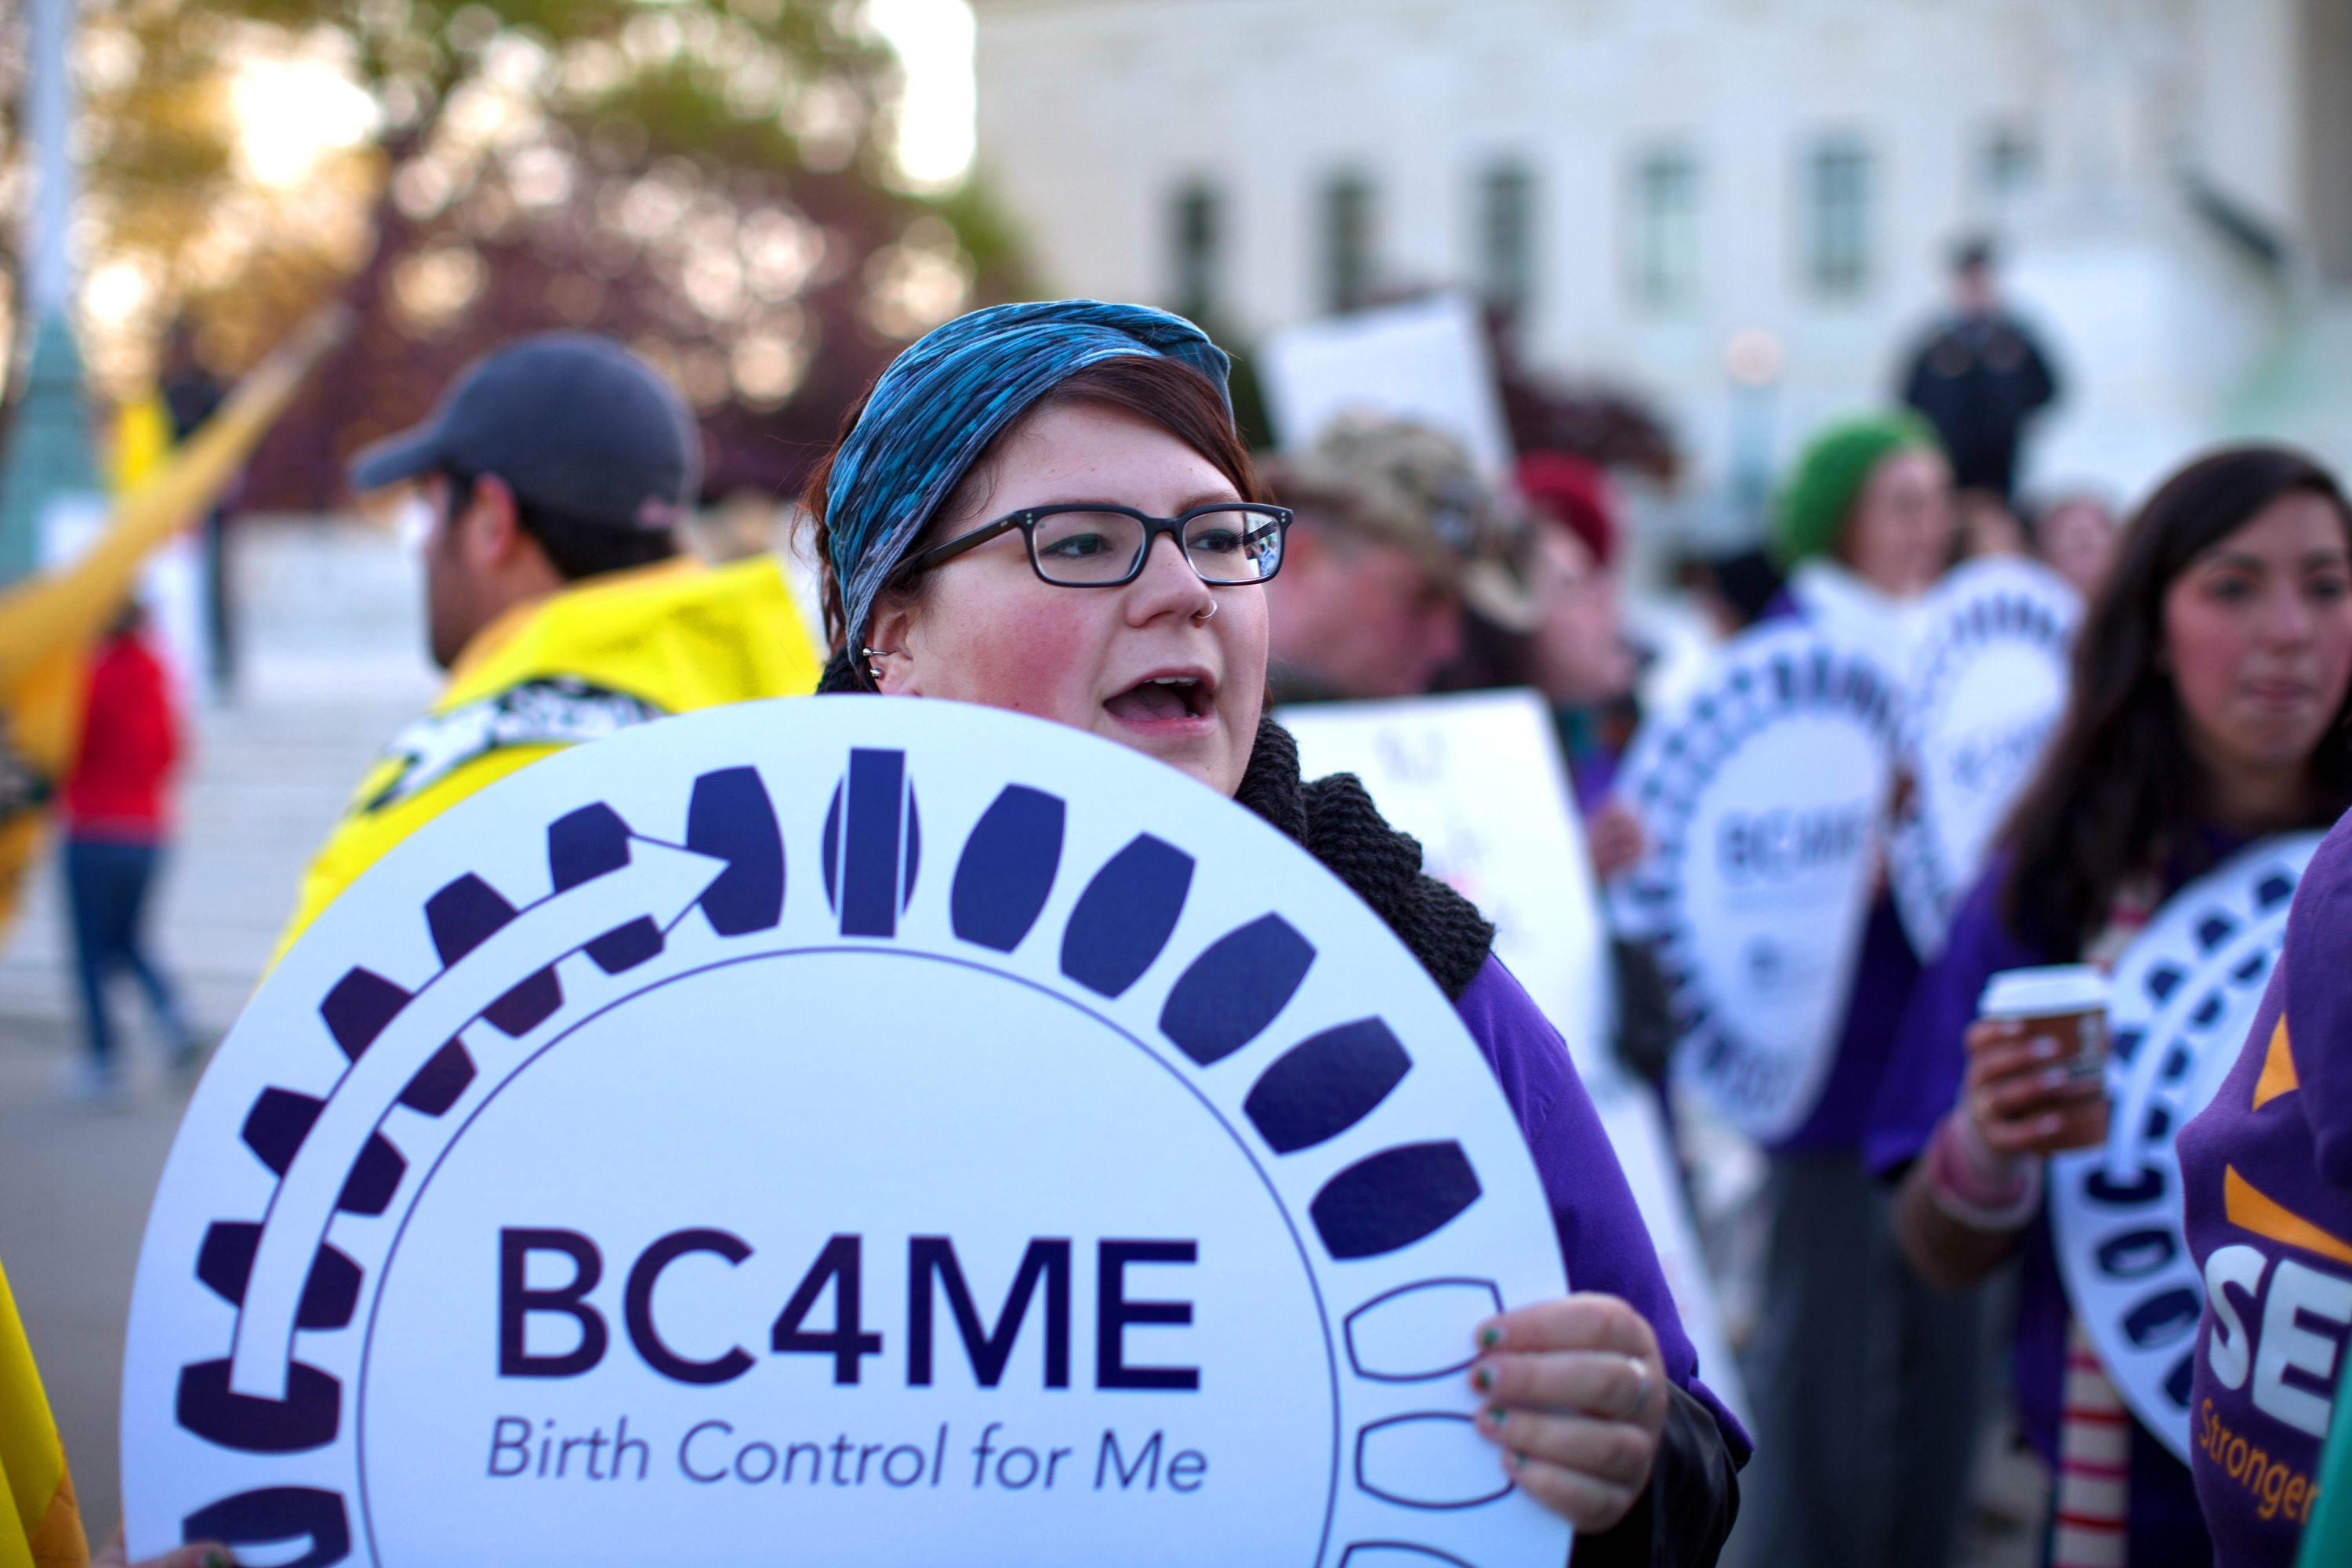 A demonstrator holds a sign supporting birth control outside the Supreme Court in Washington, D.C. Some say oral contraceptives should be available without a prescription.